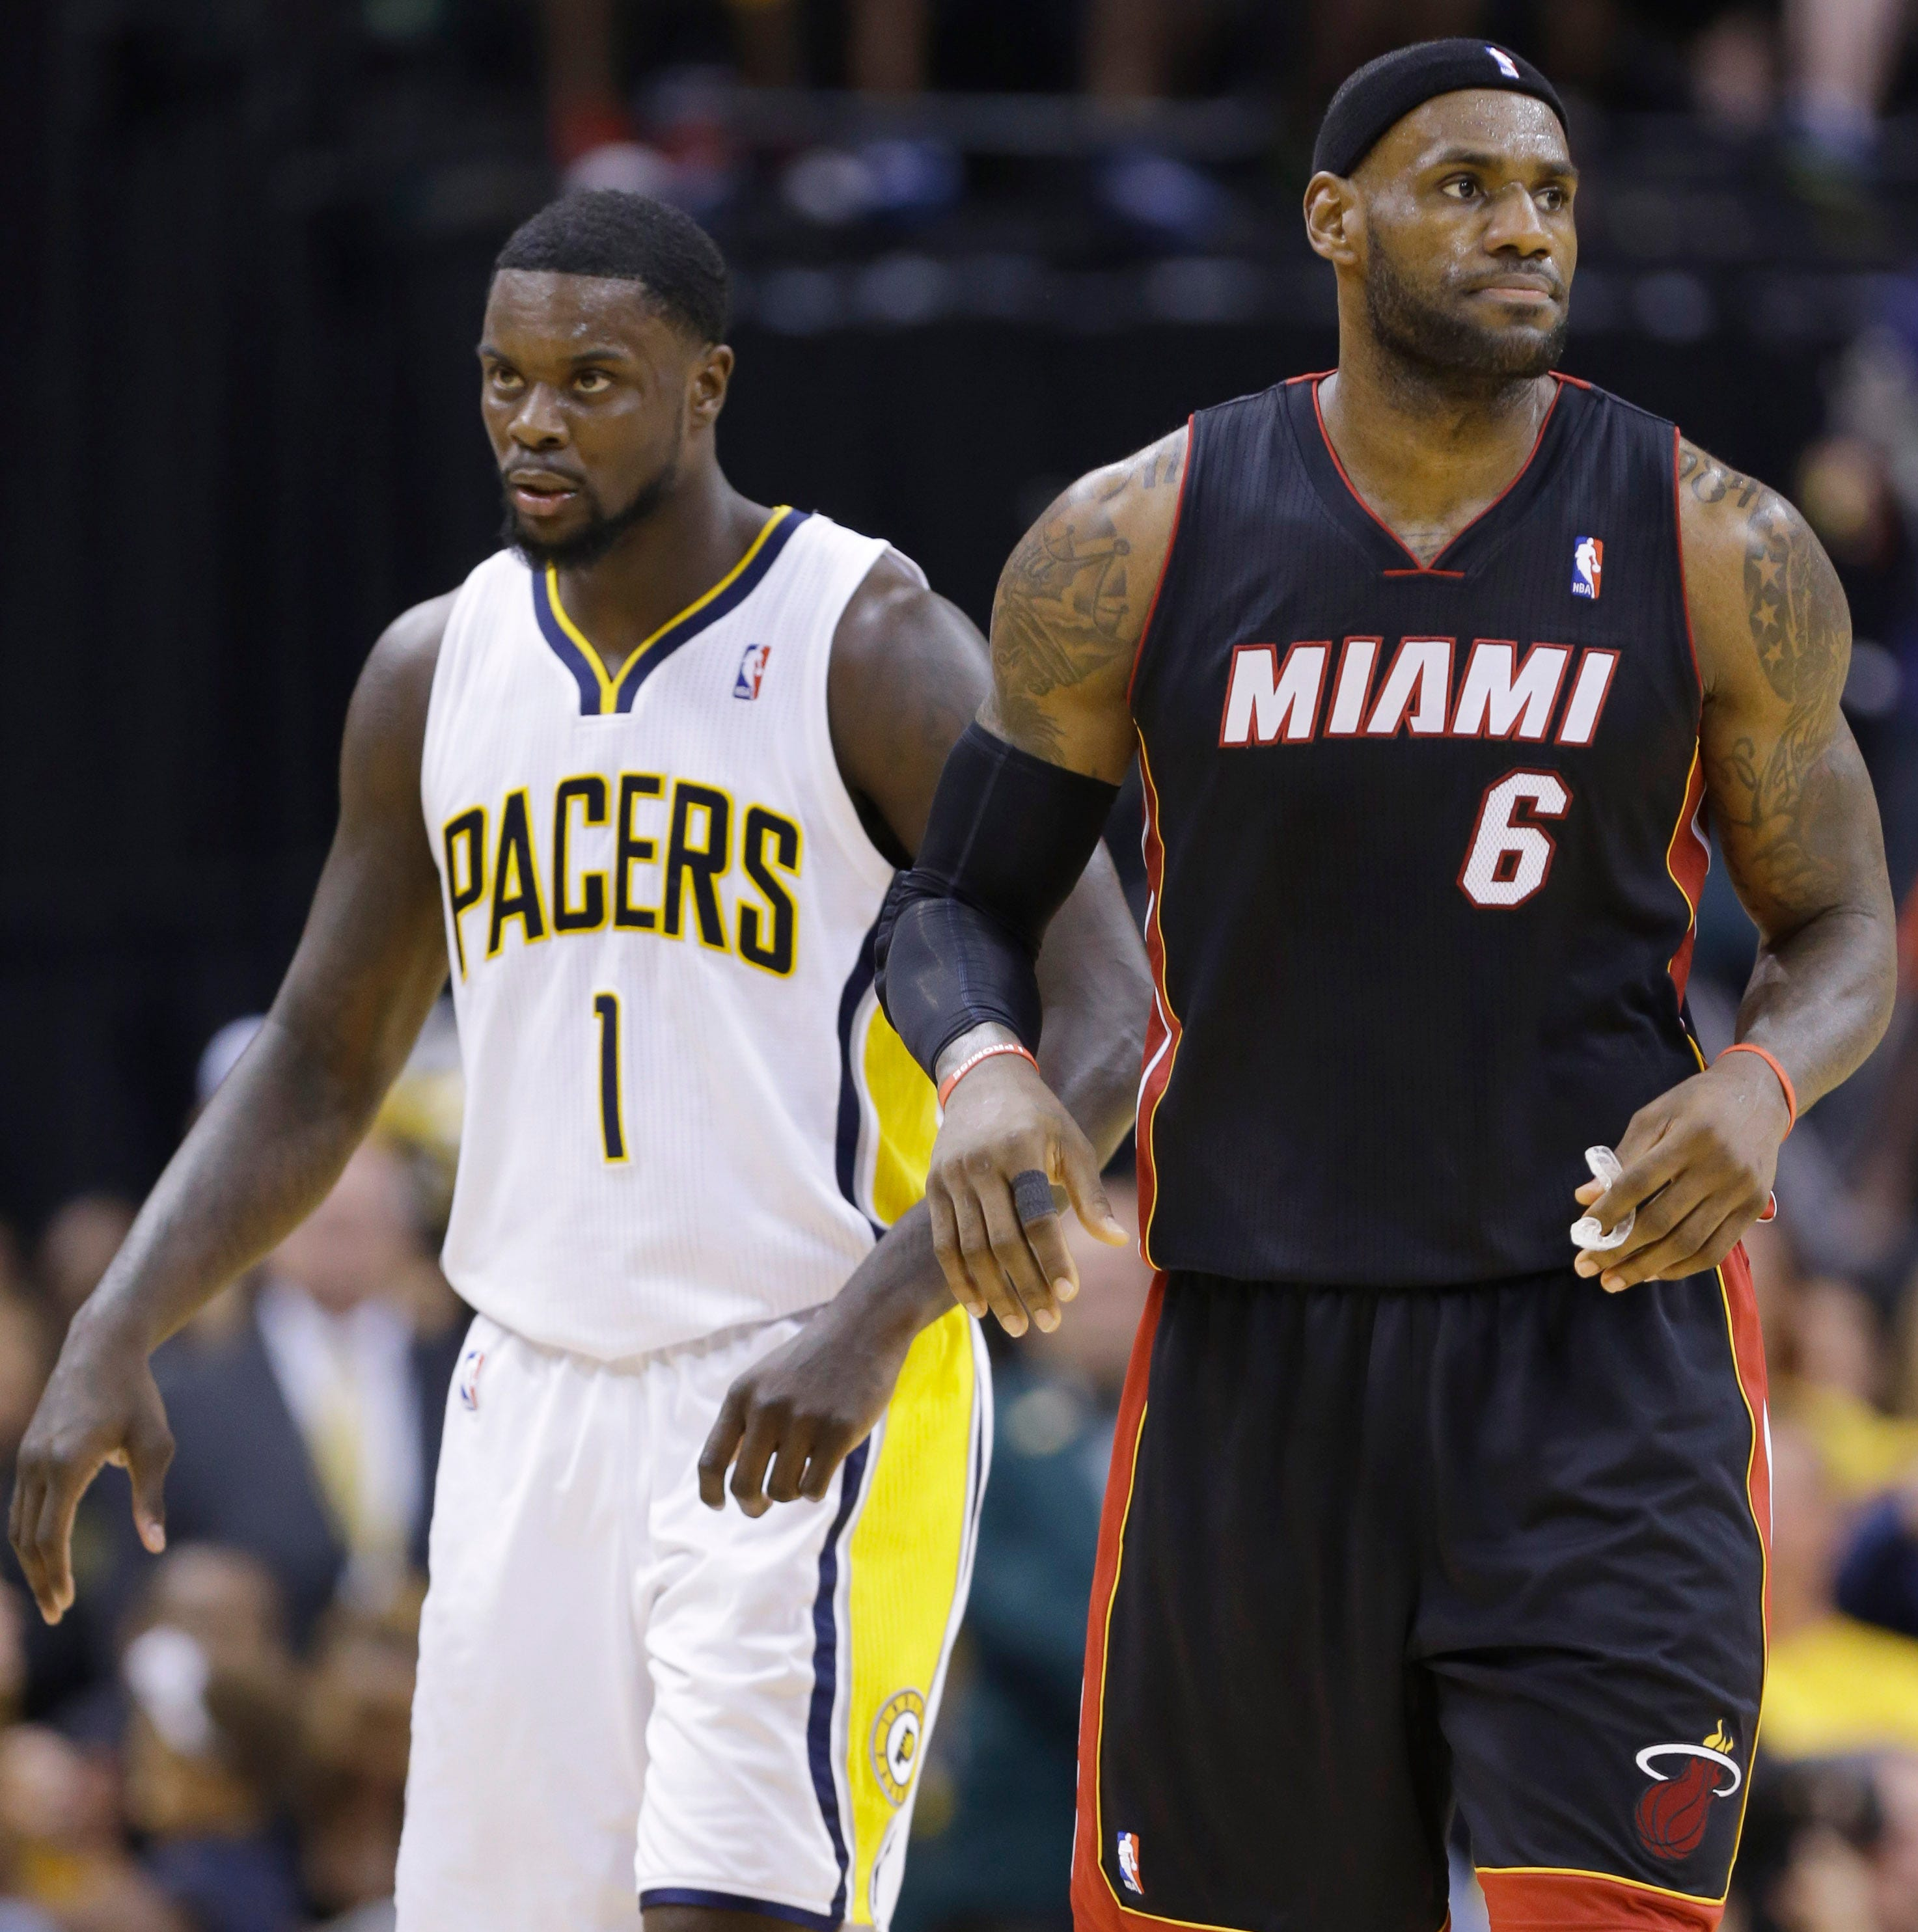 Why did Lance blow in LeBron's ear? Now we know.